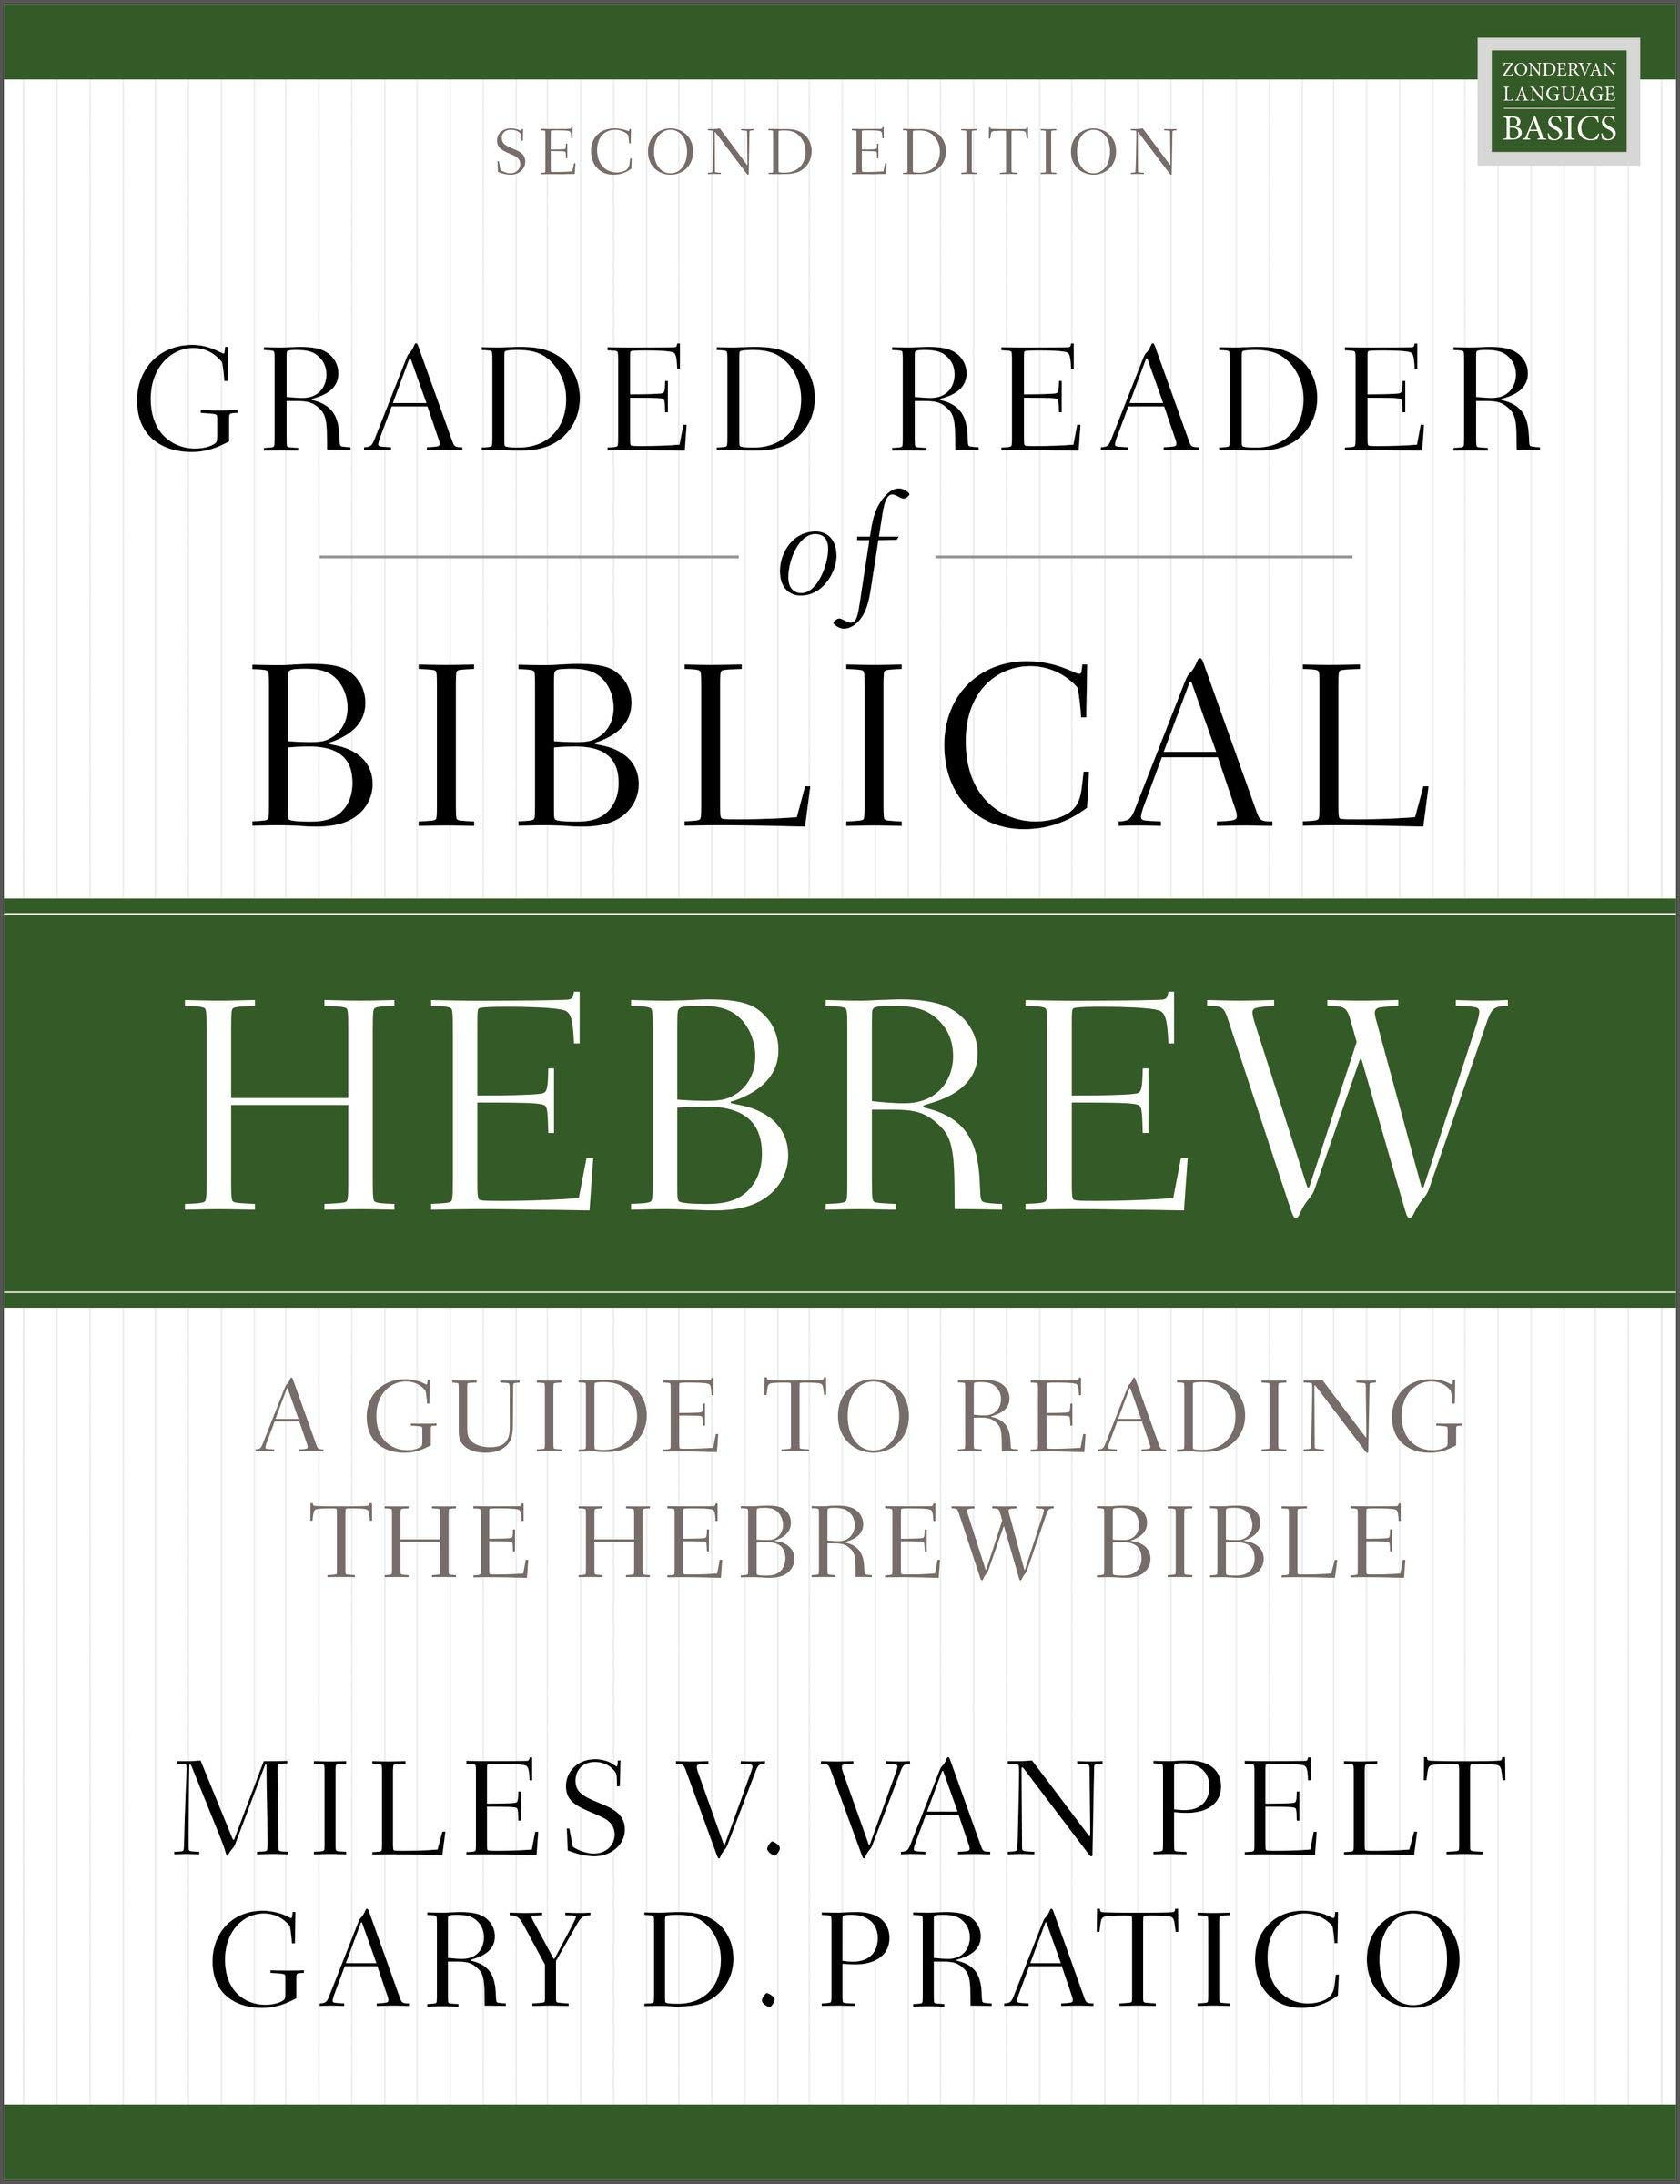 Graded Reader of Biblical Hebrew, Second Edition: A Guide to